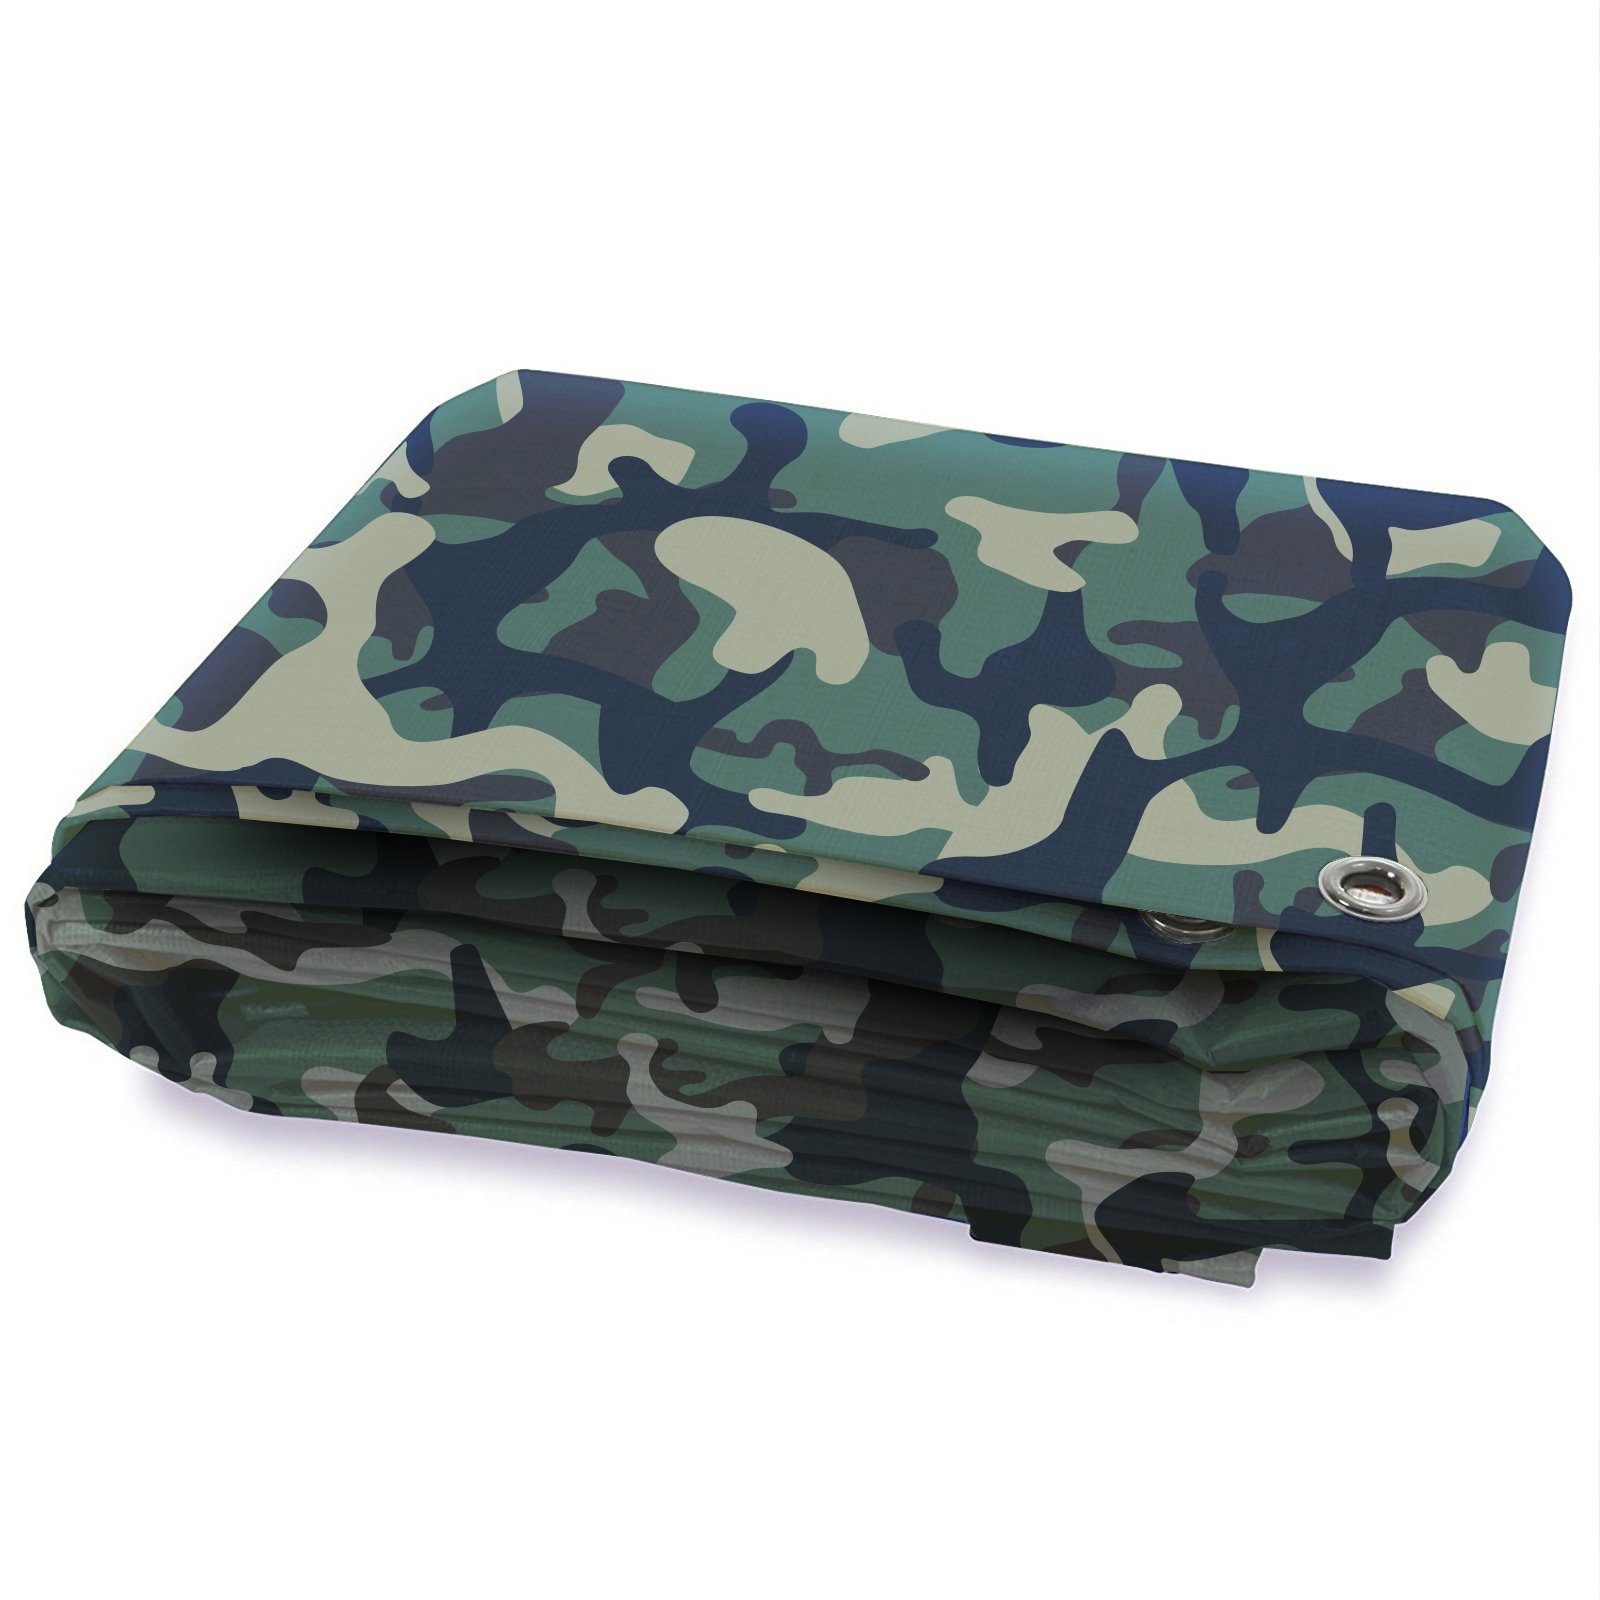 Tarps Waterproof | Ground Tent Trailer Cover | Large Tarpaulin in Multiple Sizes | 3 oz/Sq Yd | Camo 16' x 20'